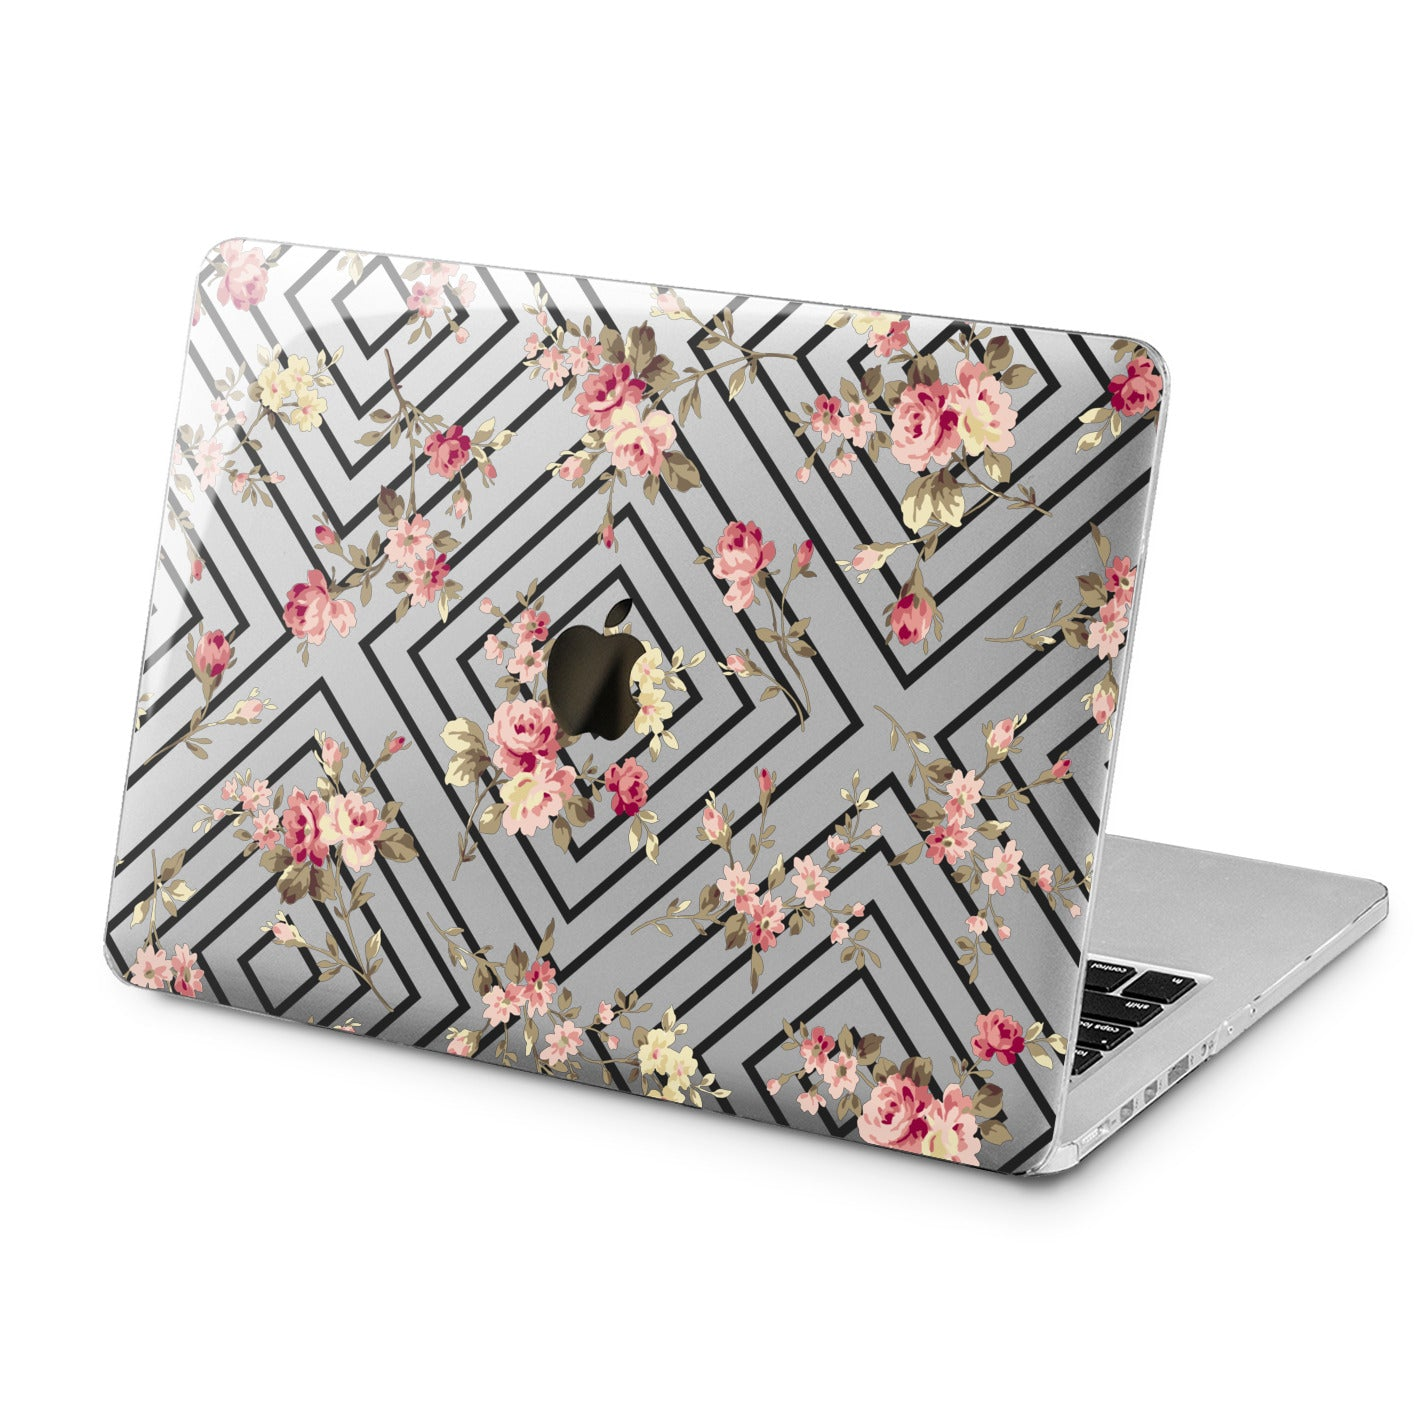 Lex Altern Floral Geometry Design Case for your Laptop Apple Macbook.